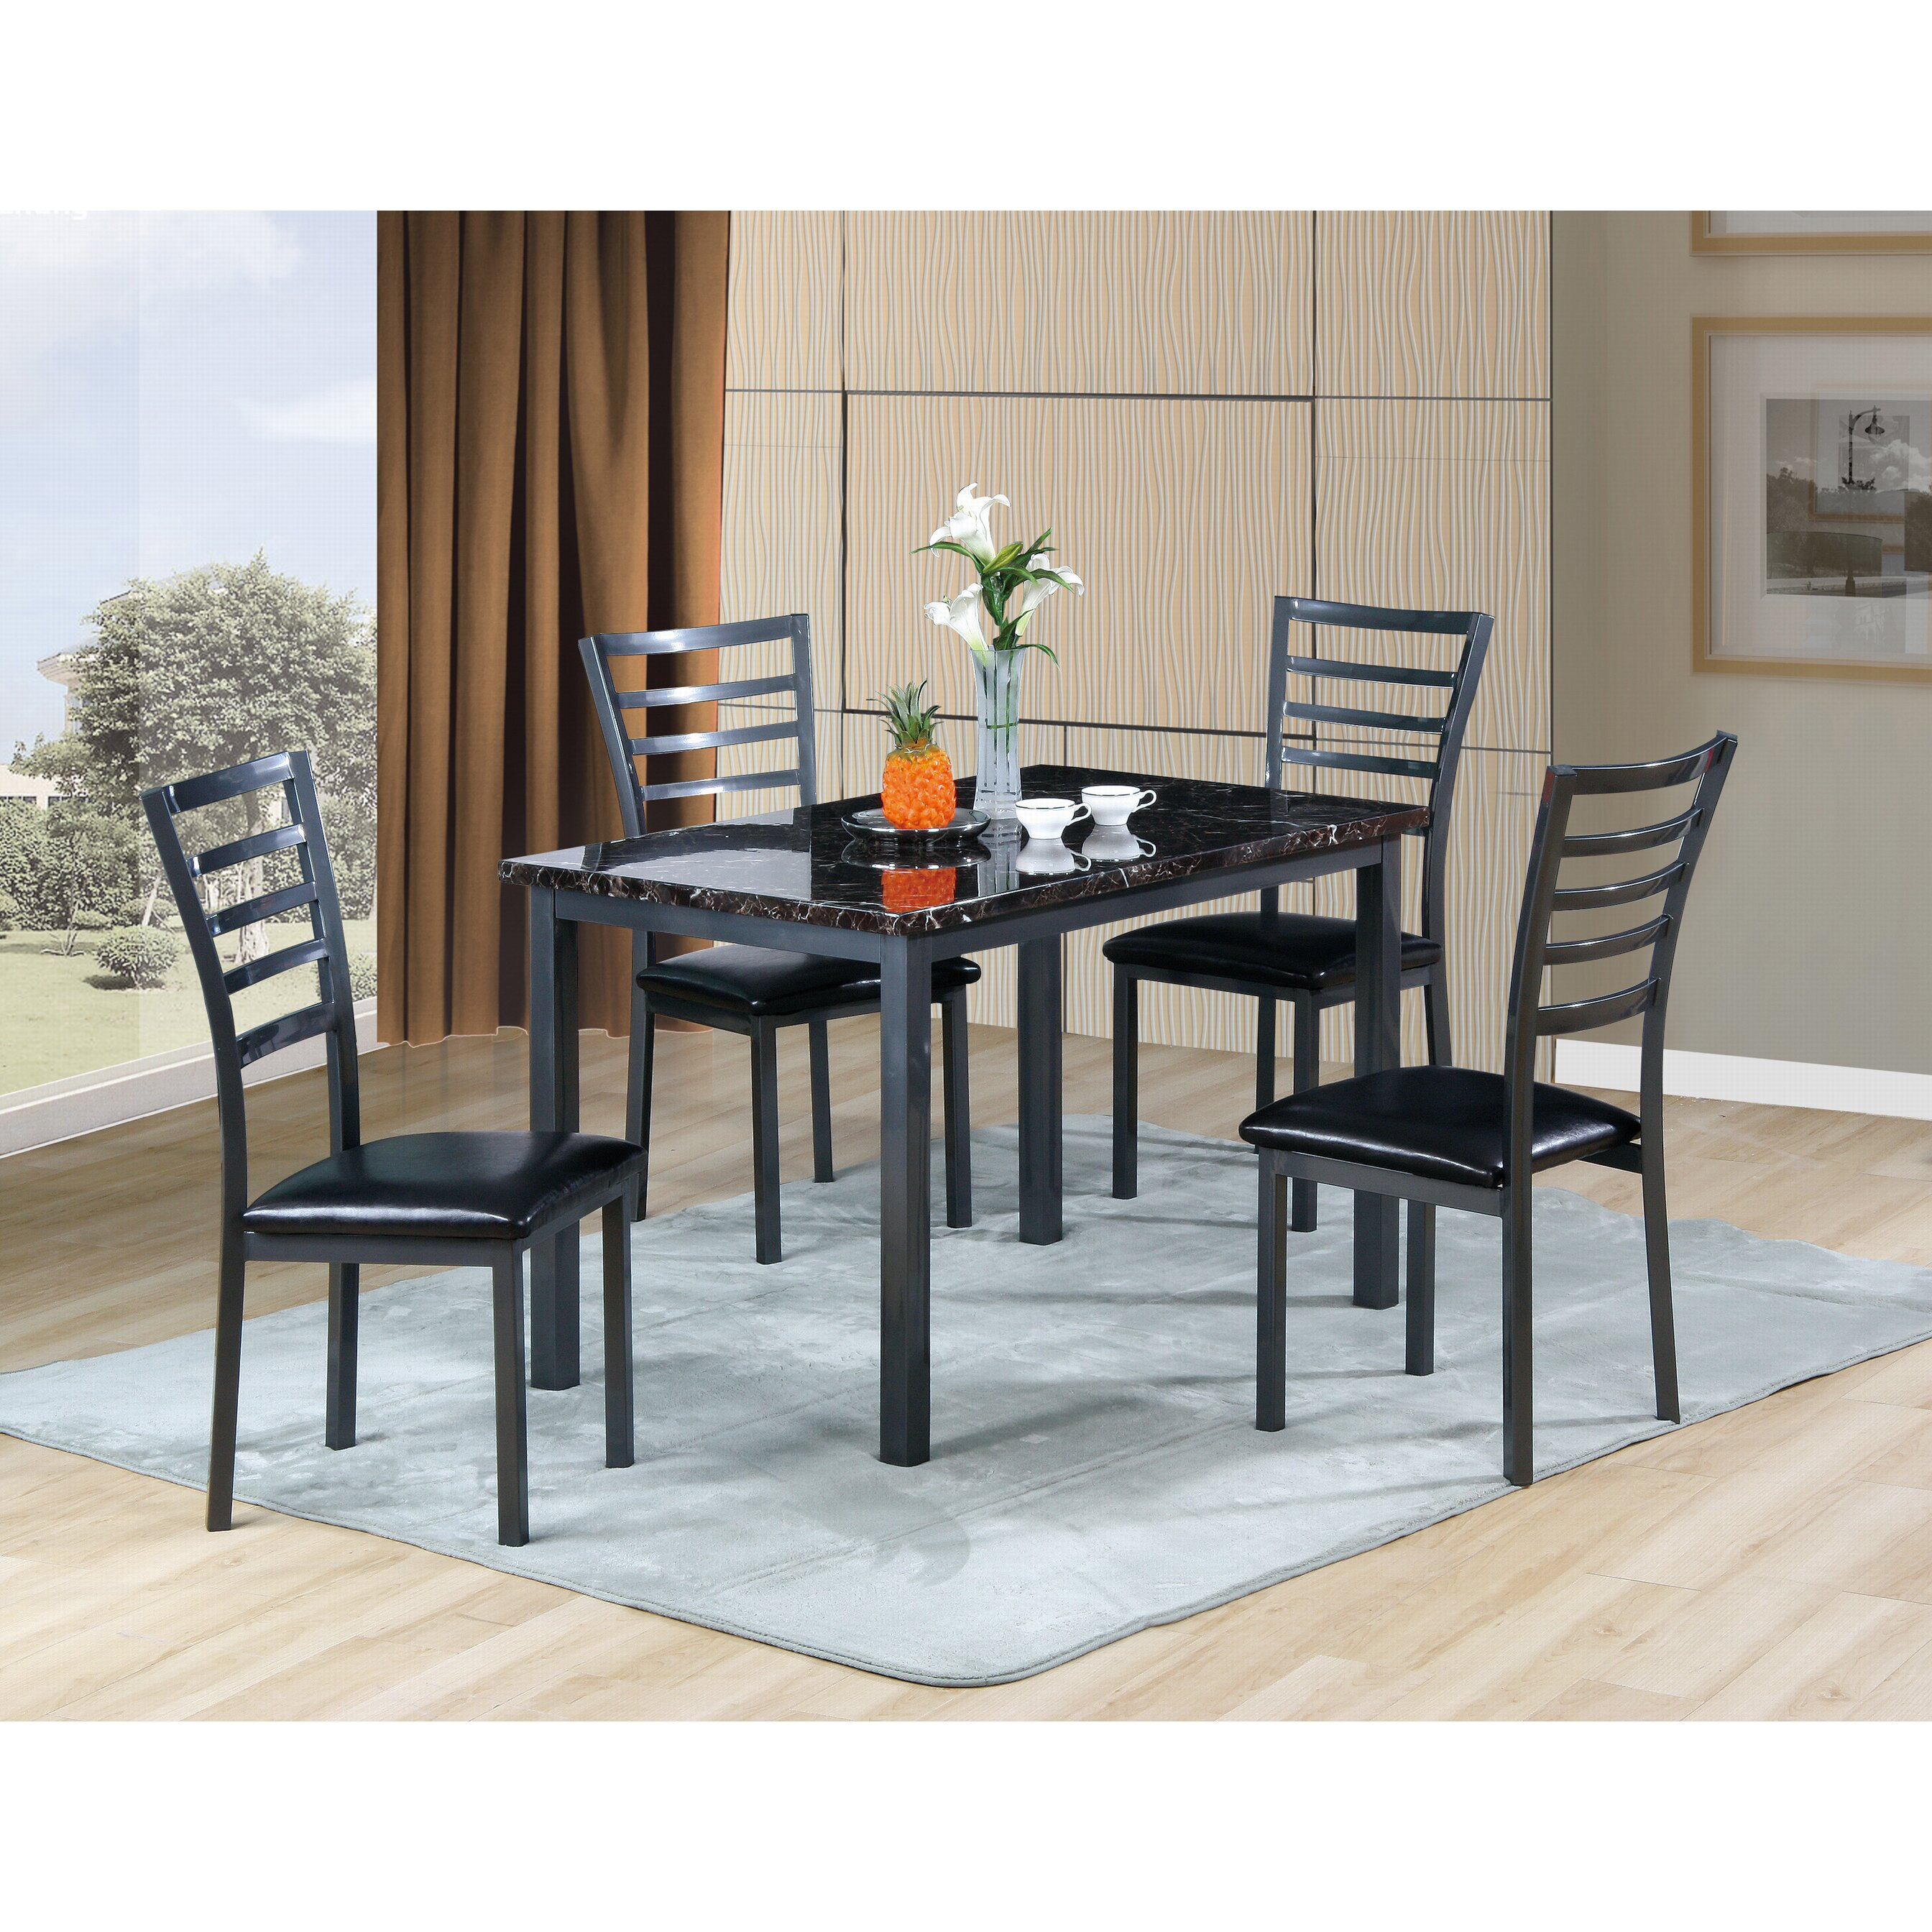 Carlyle Dining Room Set: Williams Import Co. Carlyle 5 Piece Dining Set & Reviews